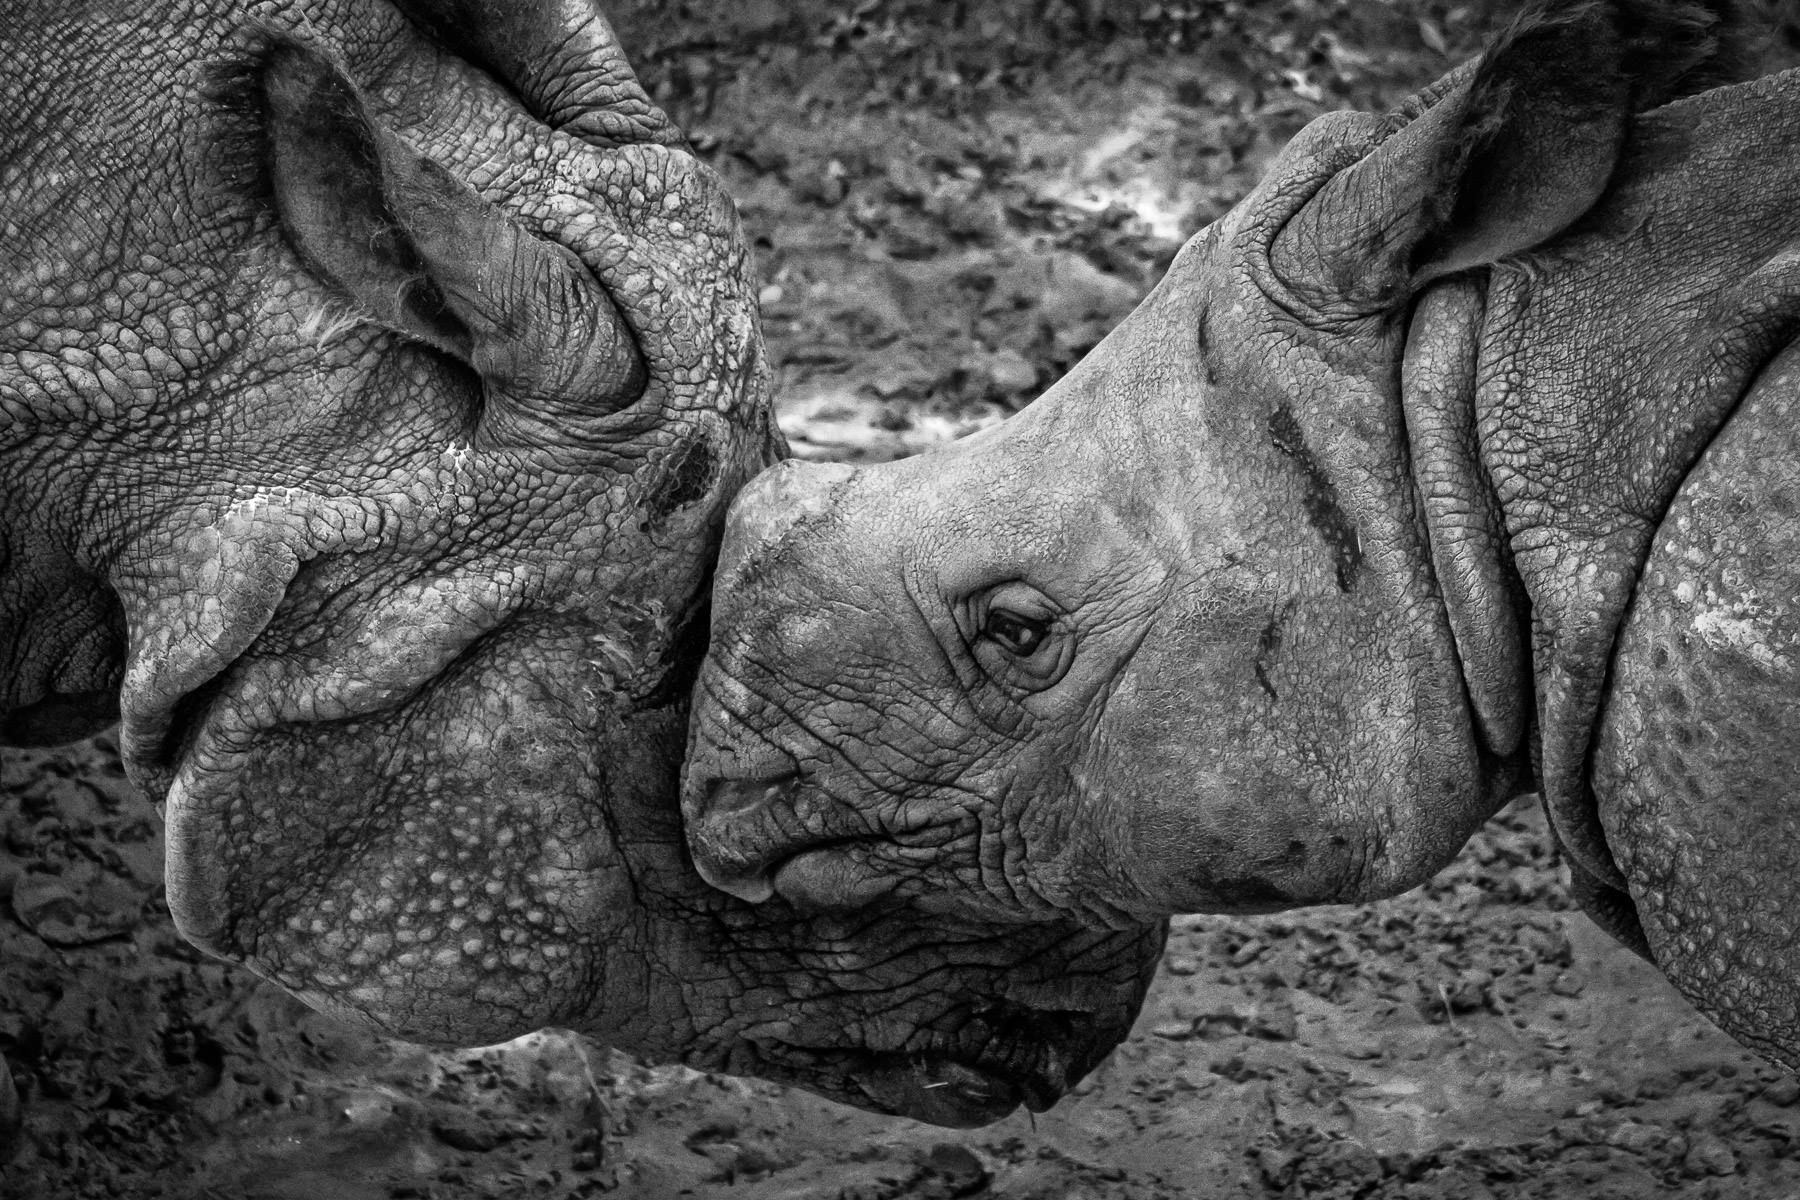 A pair of rhinoceroses at the Fort Worth Zoo prod each other with their heads.